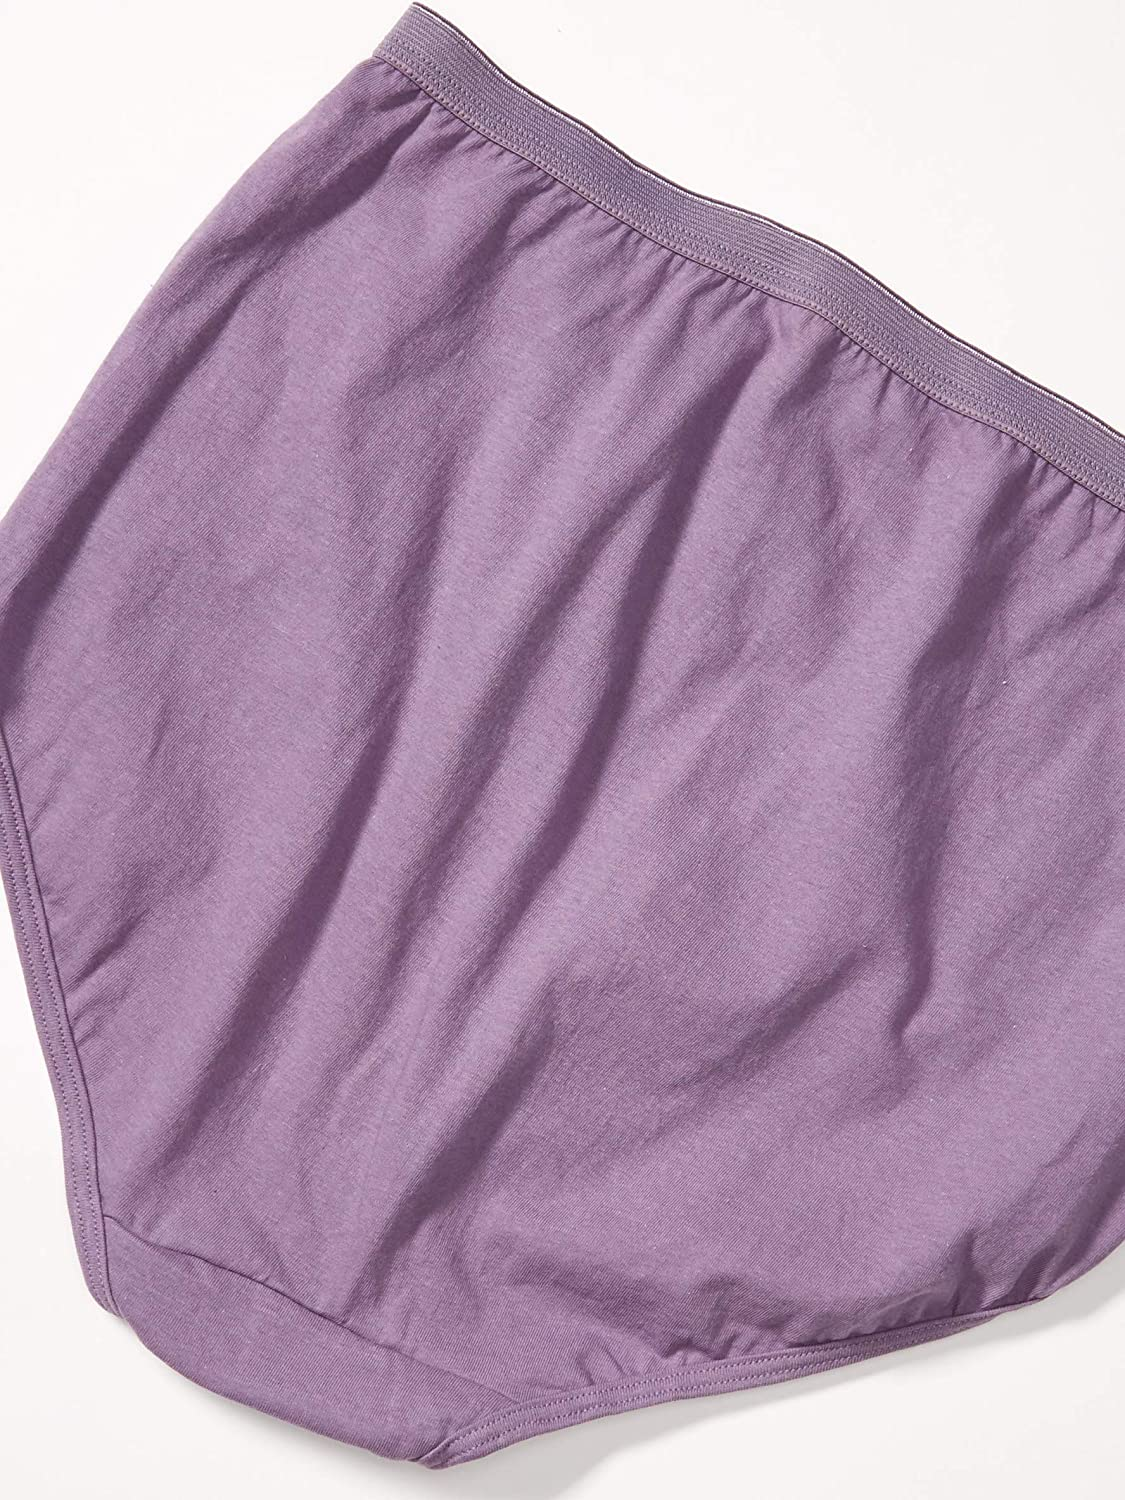 JUST MY SIZE Women's Plus Size Cool Comfort Cotton High Brief 6-Pack